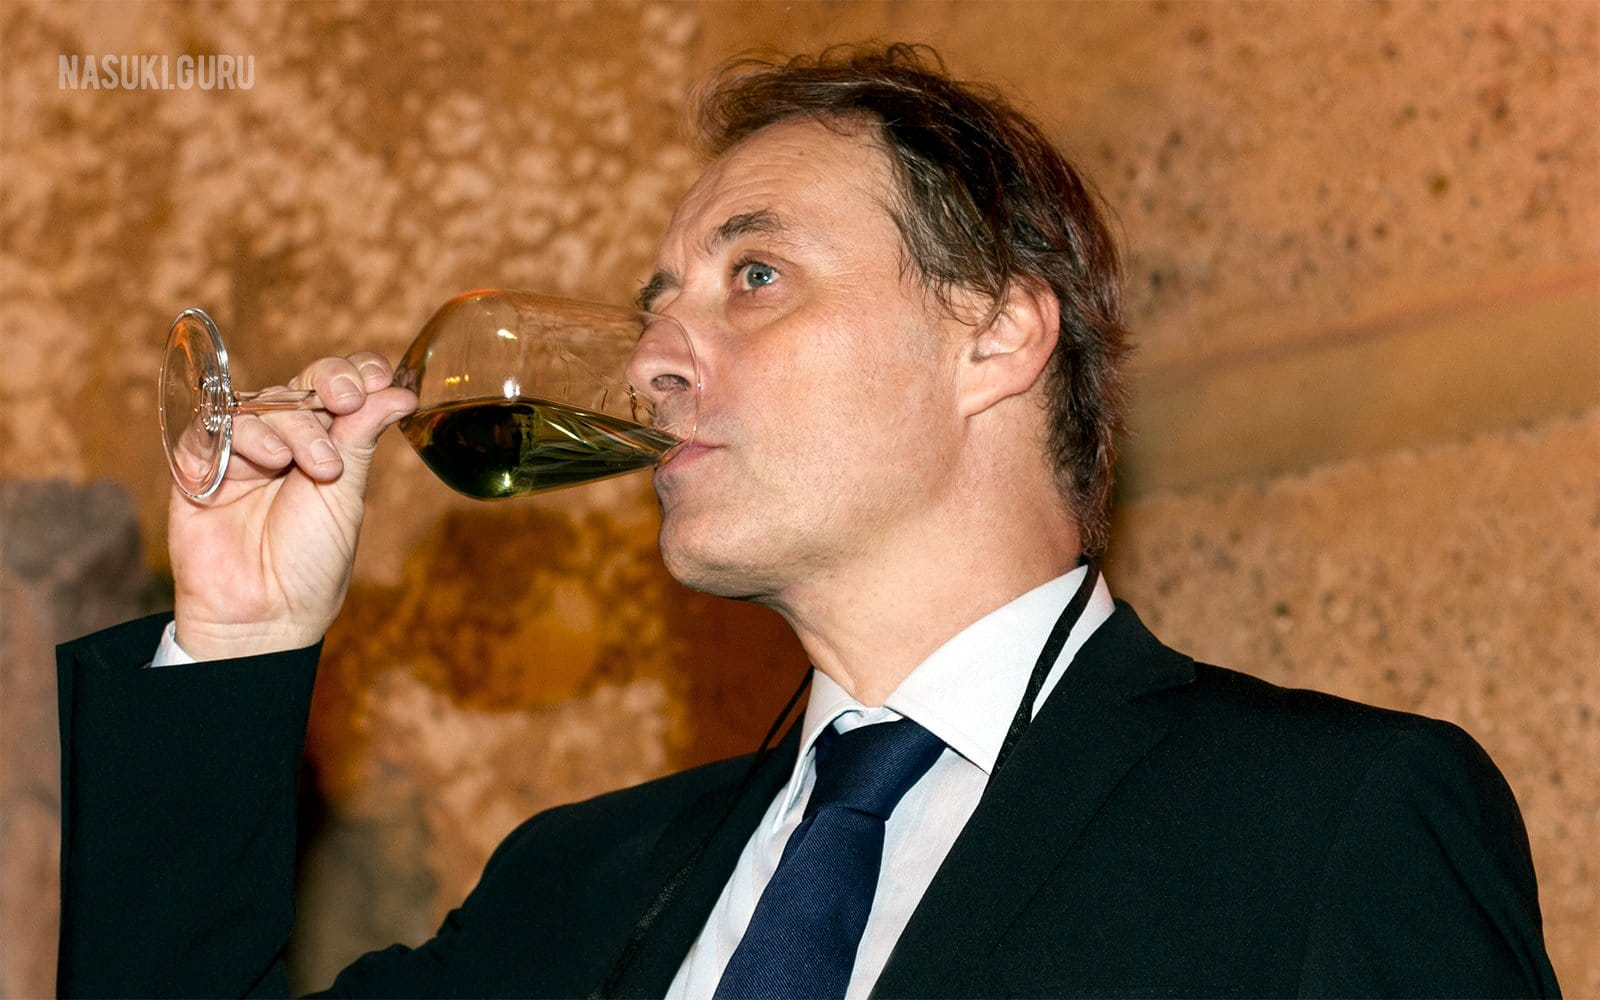 Savouring a glass of white wine